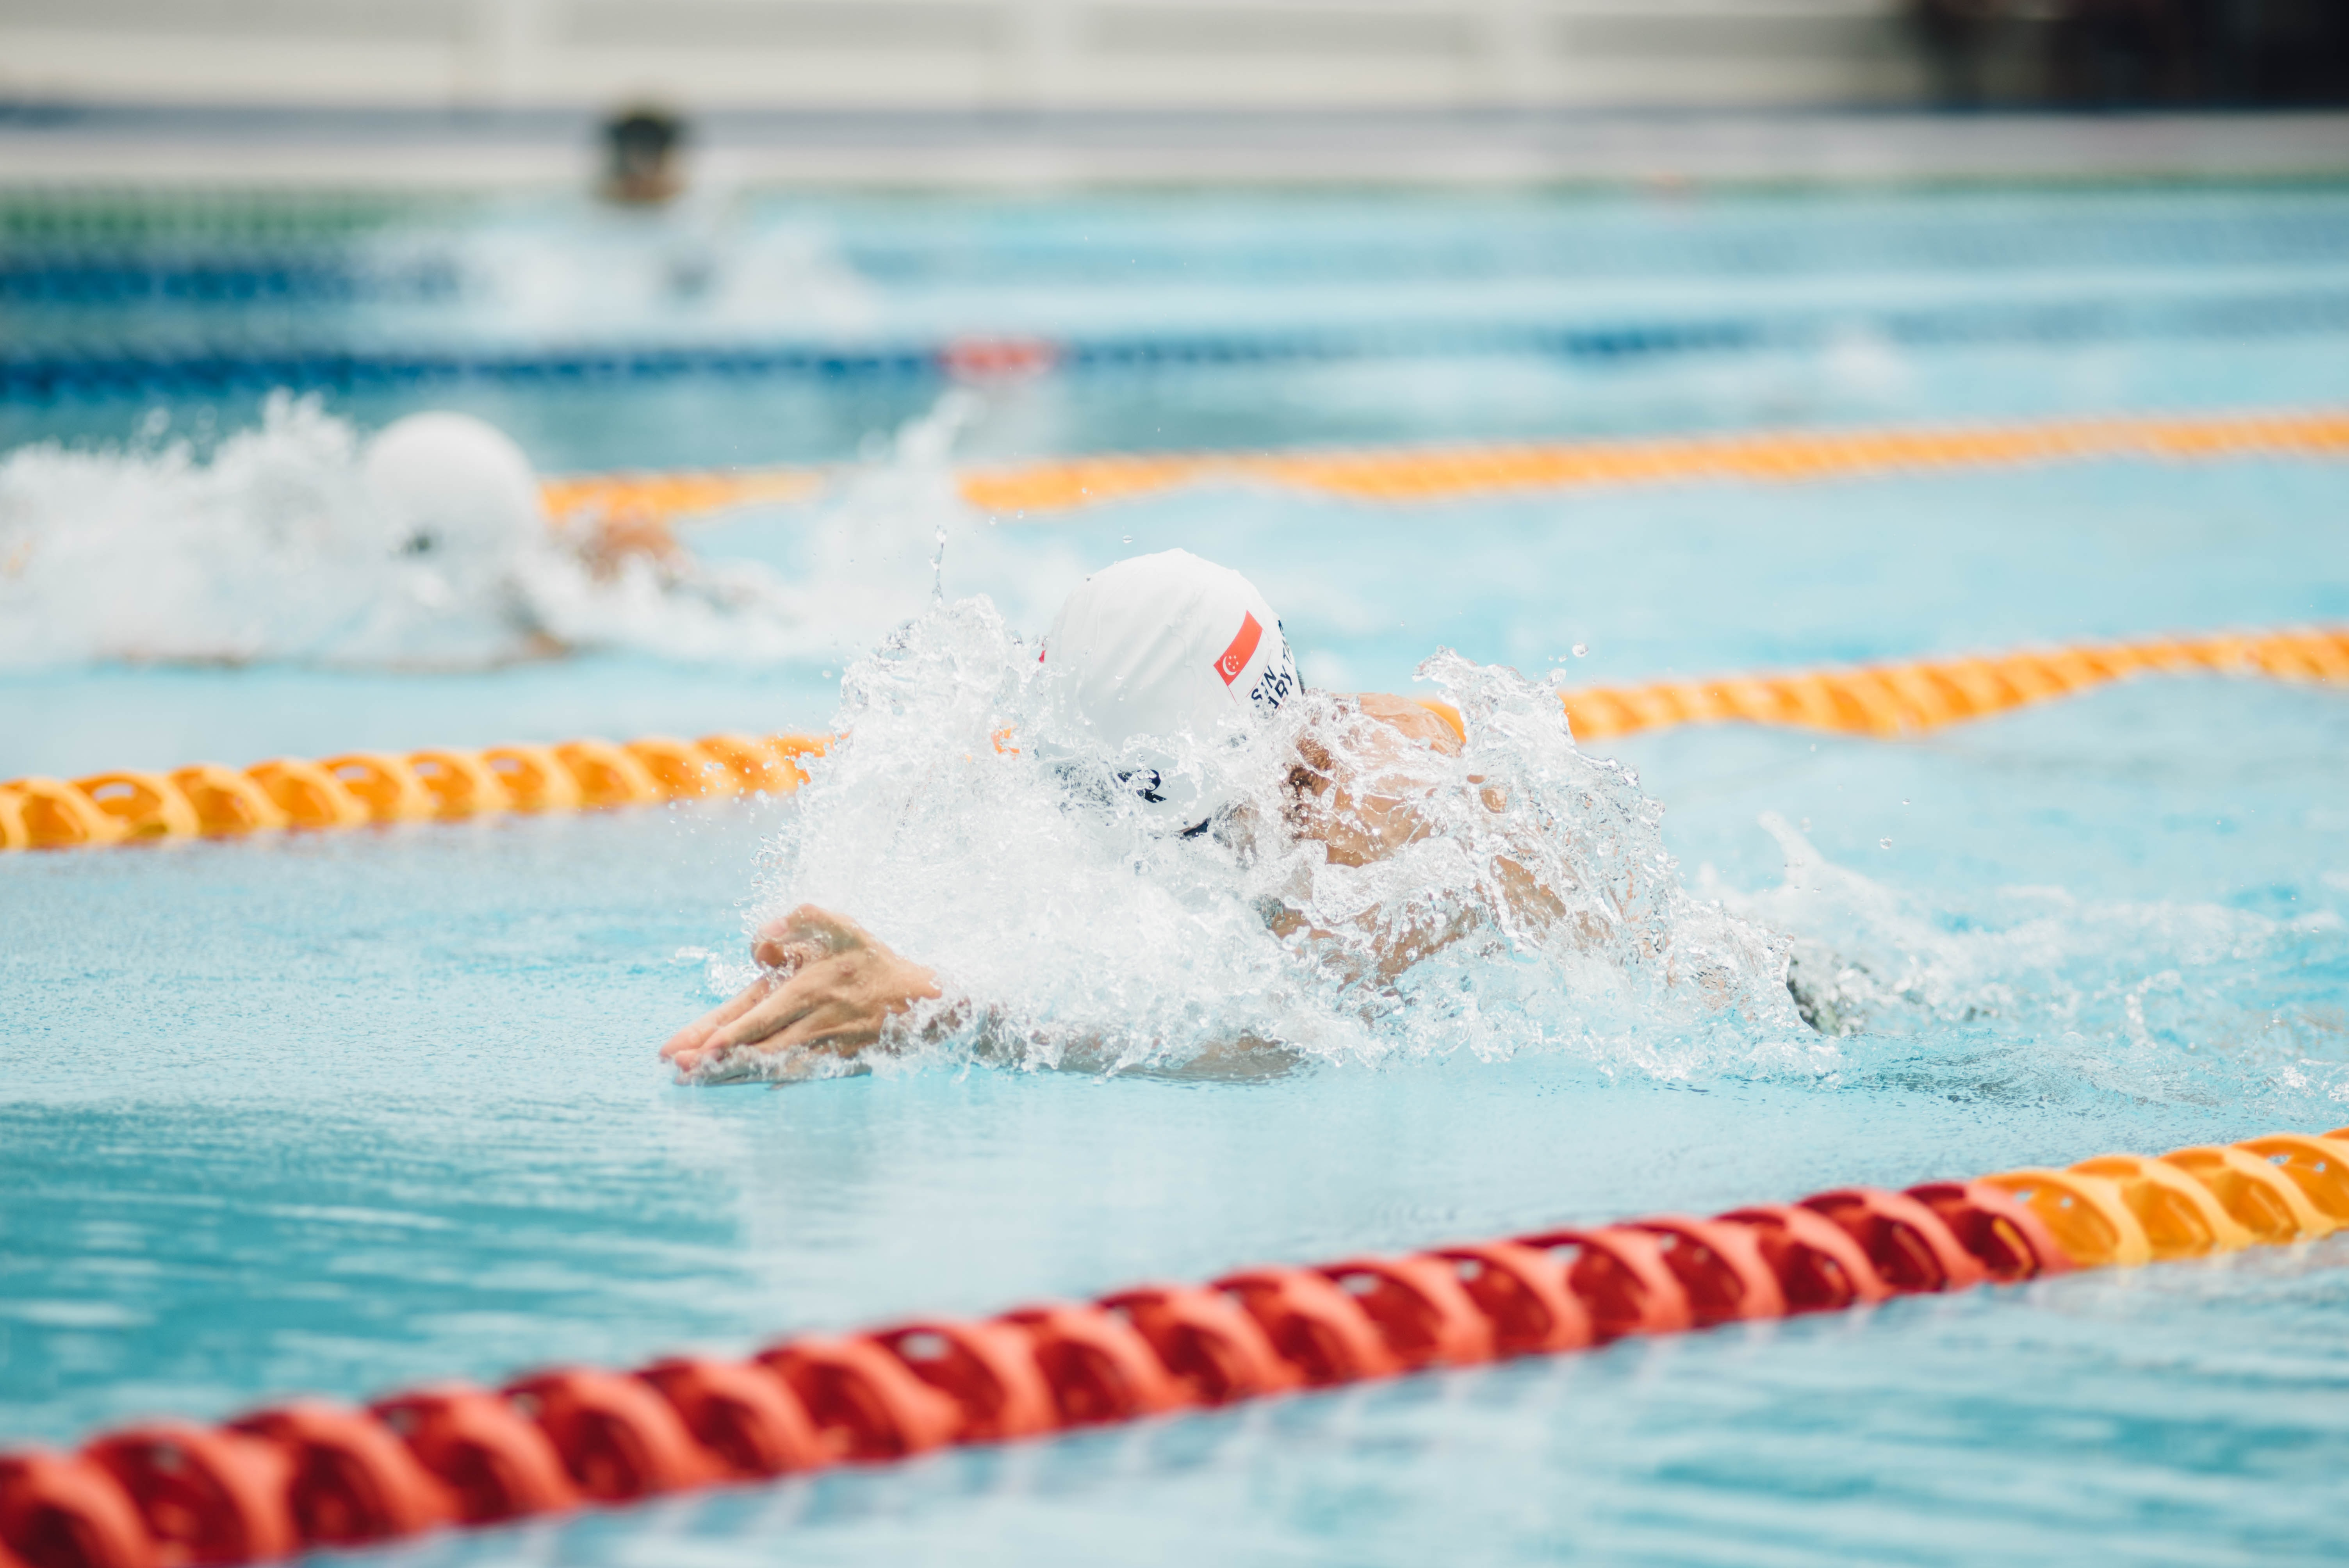 A person lane swimming in a pool, wearing a cap